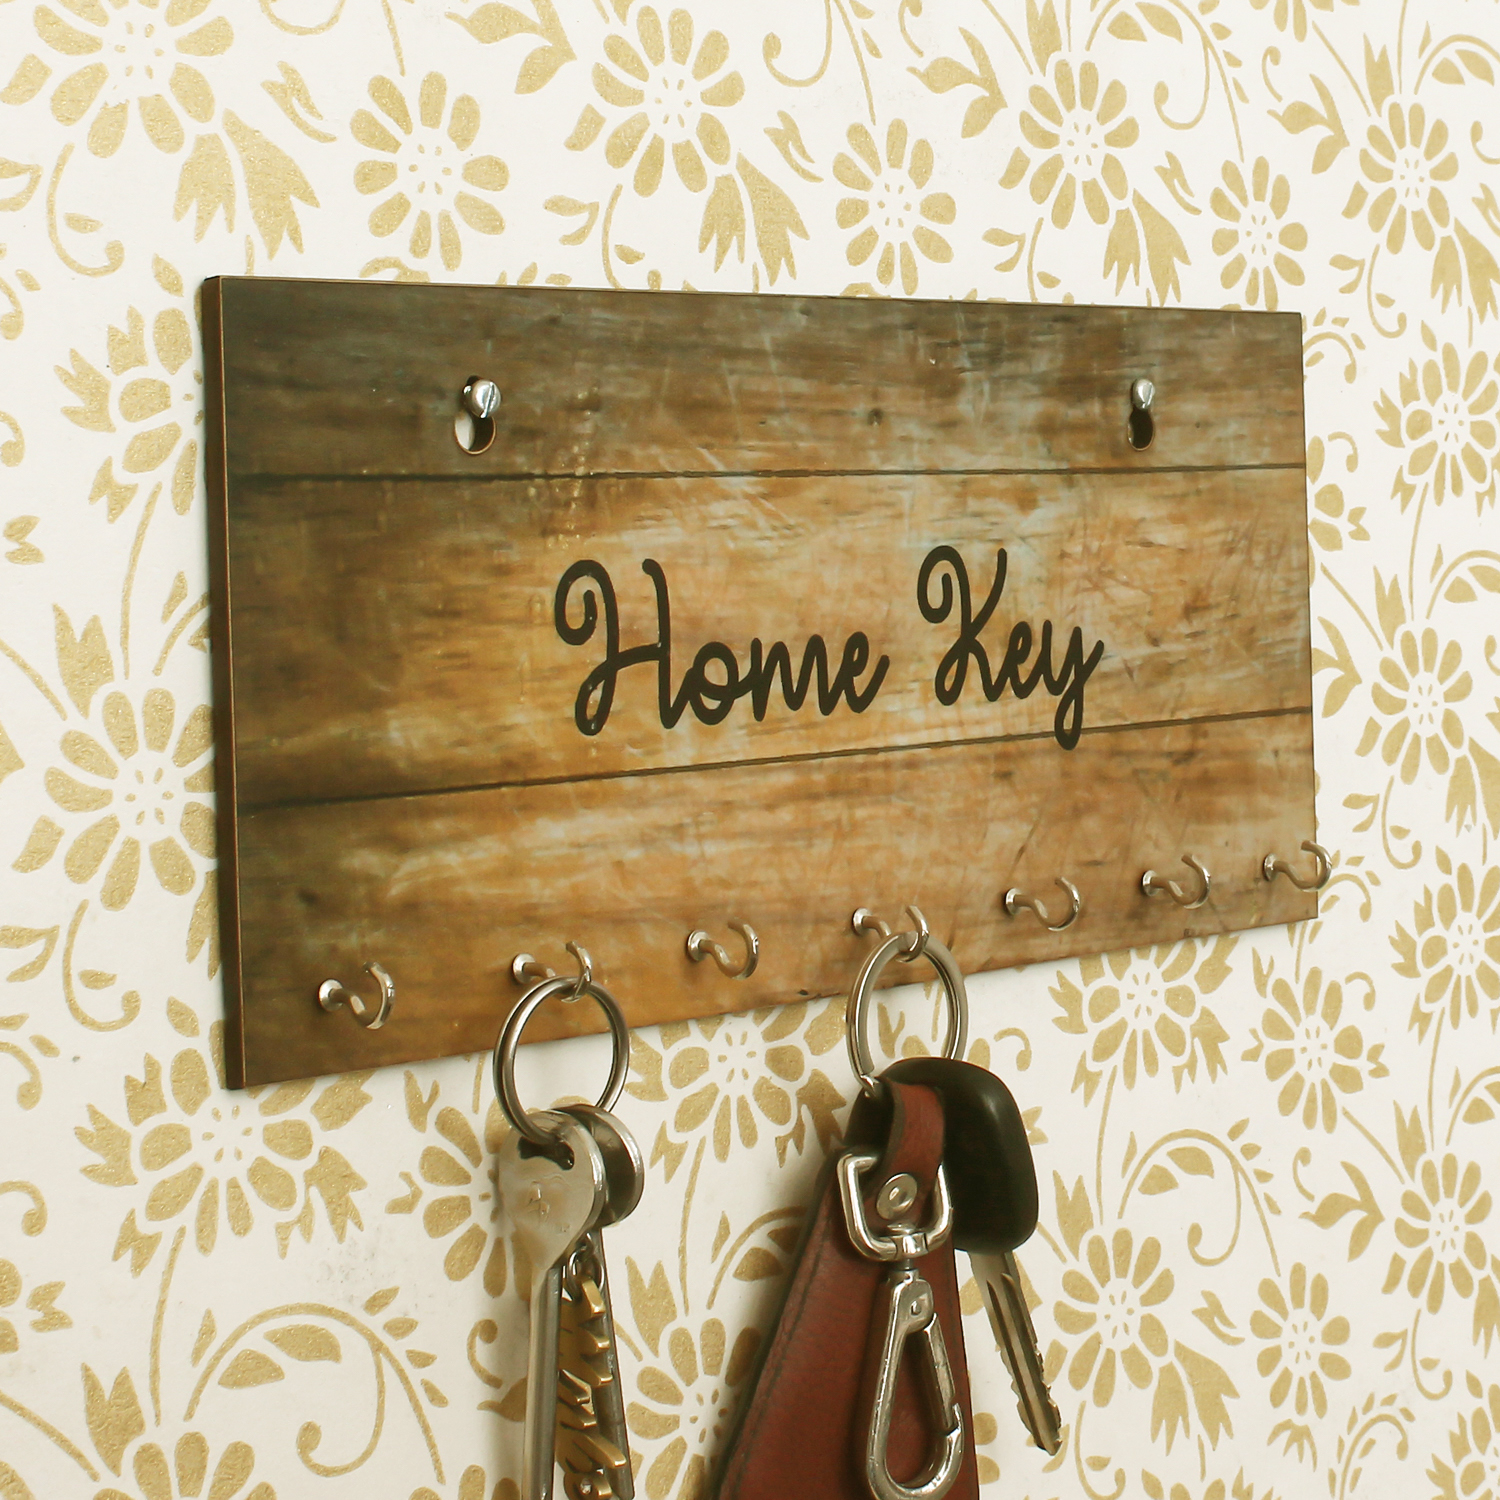 Home Key Theme Wooden Key Holder with 7 Hooks Indian Home Decor